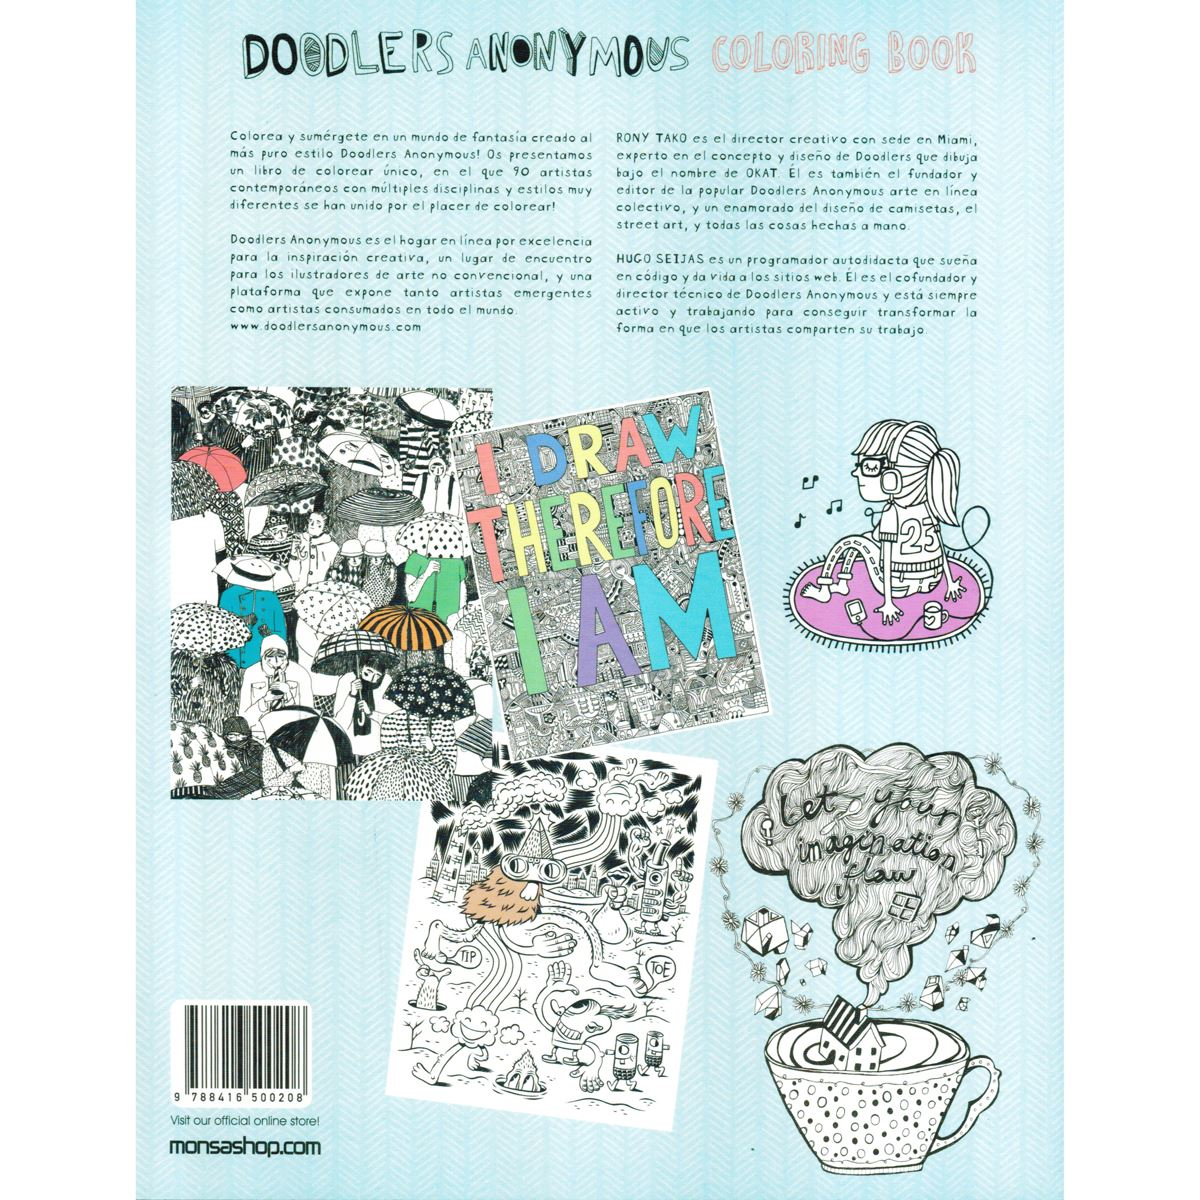 Doodlers Anonymous Coloring Book